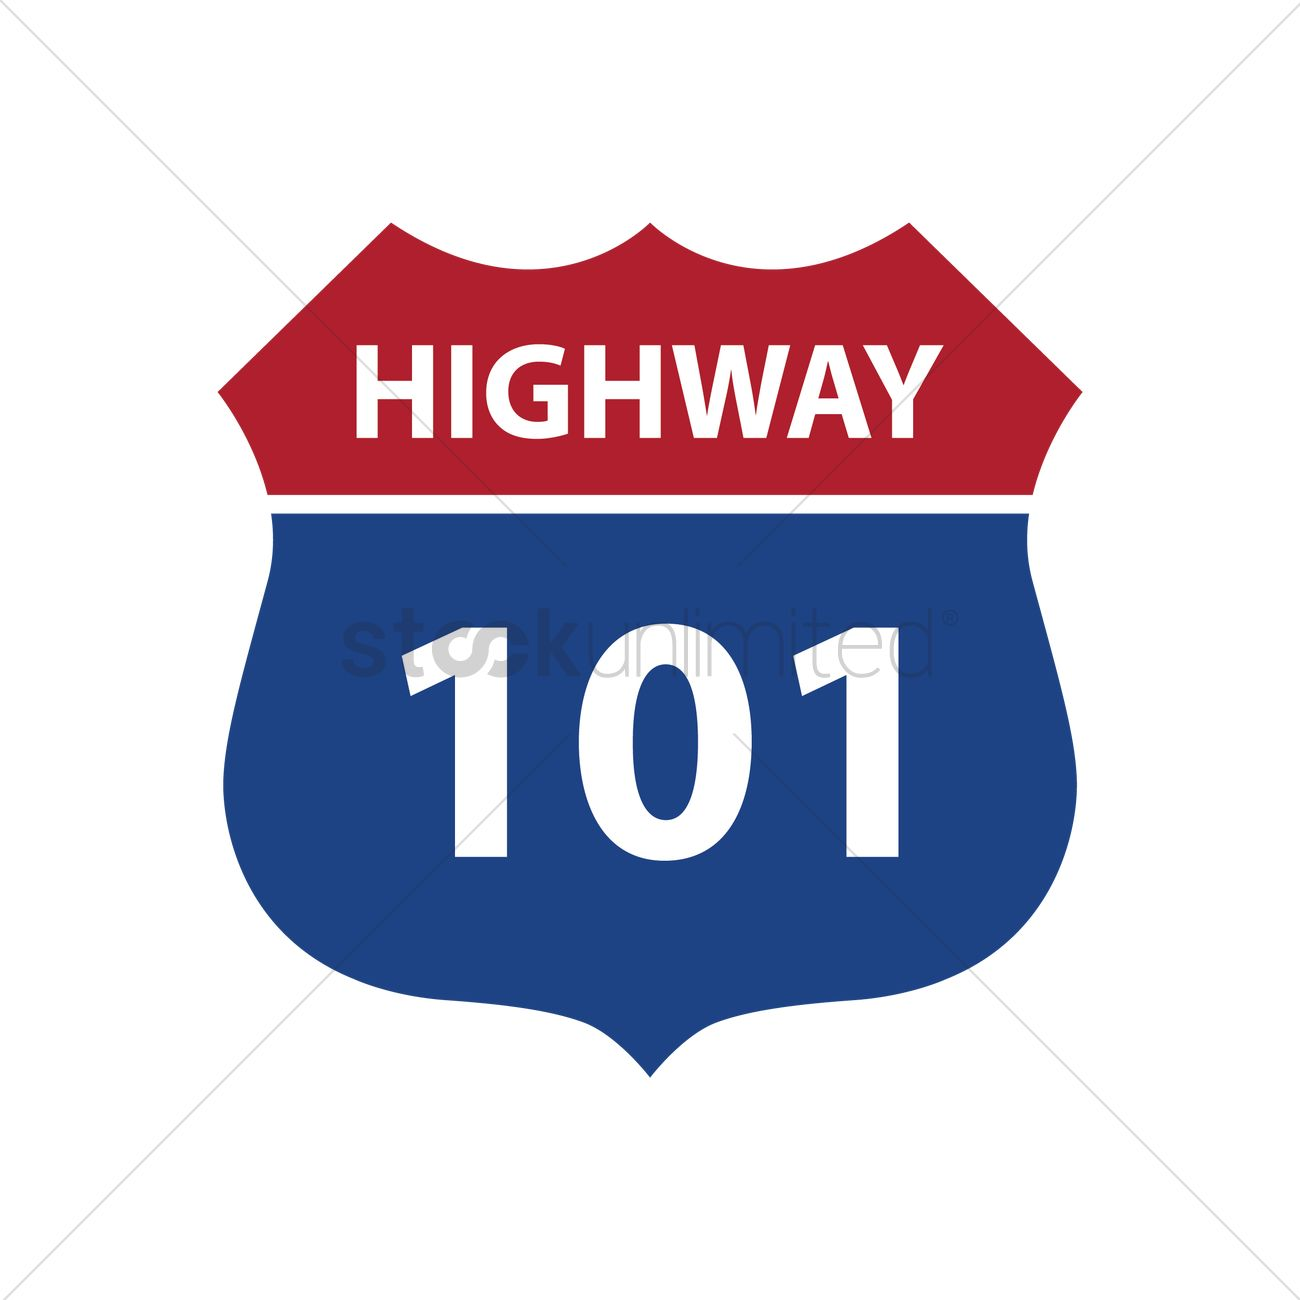 route 101 highway road sign vector image 1556979